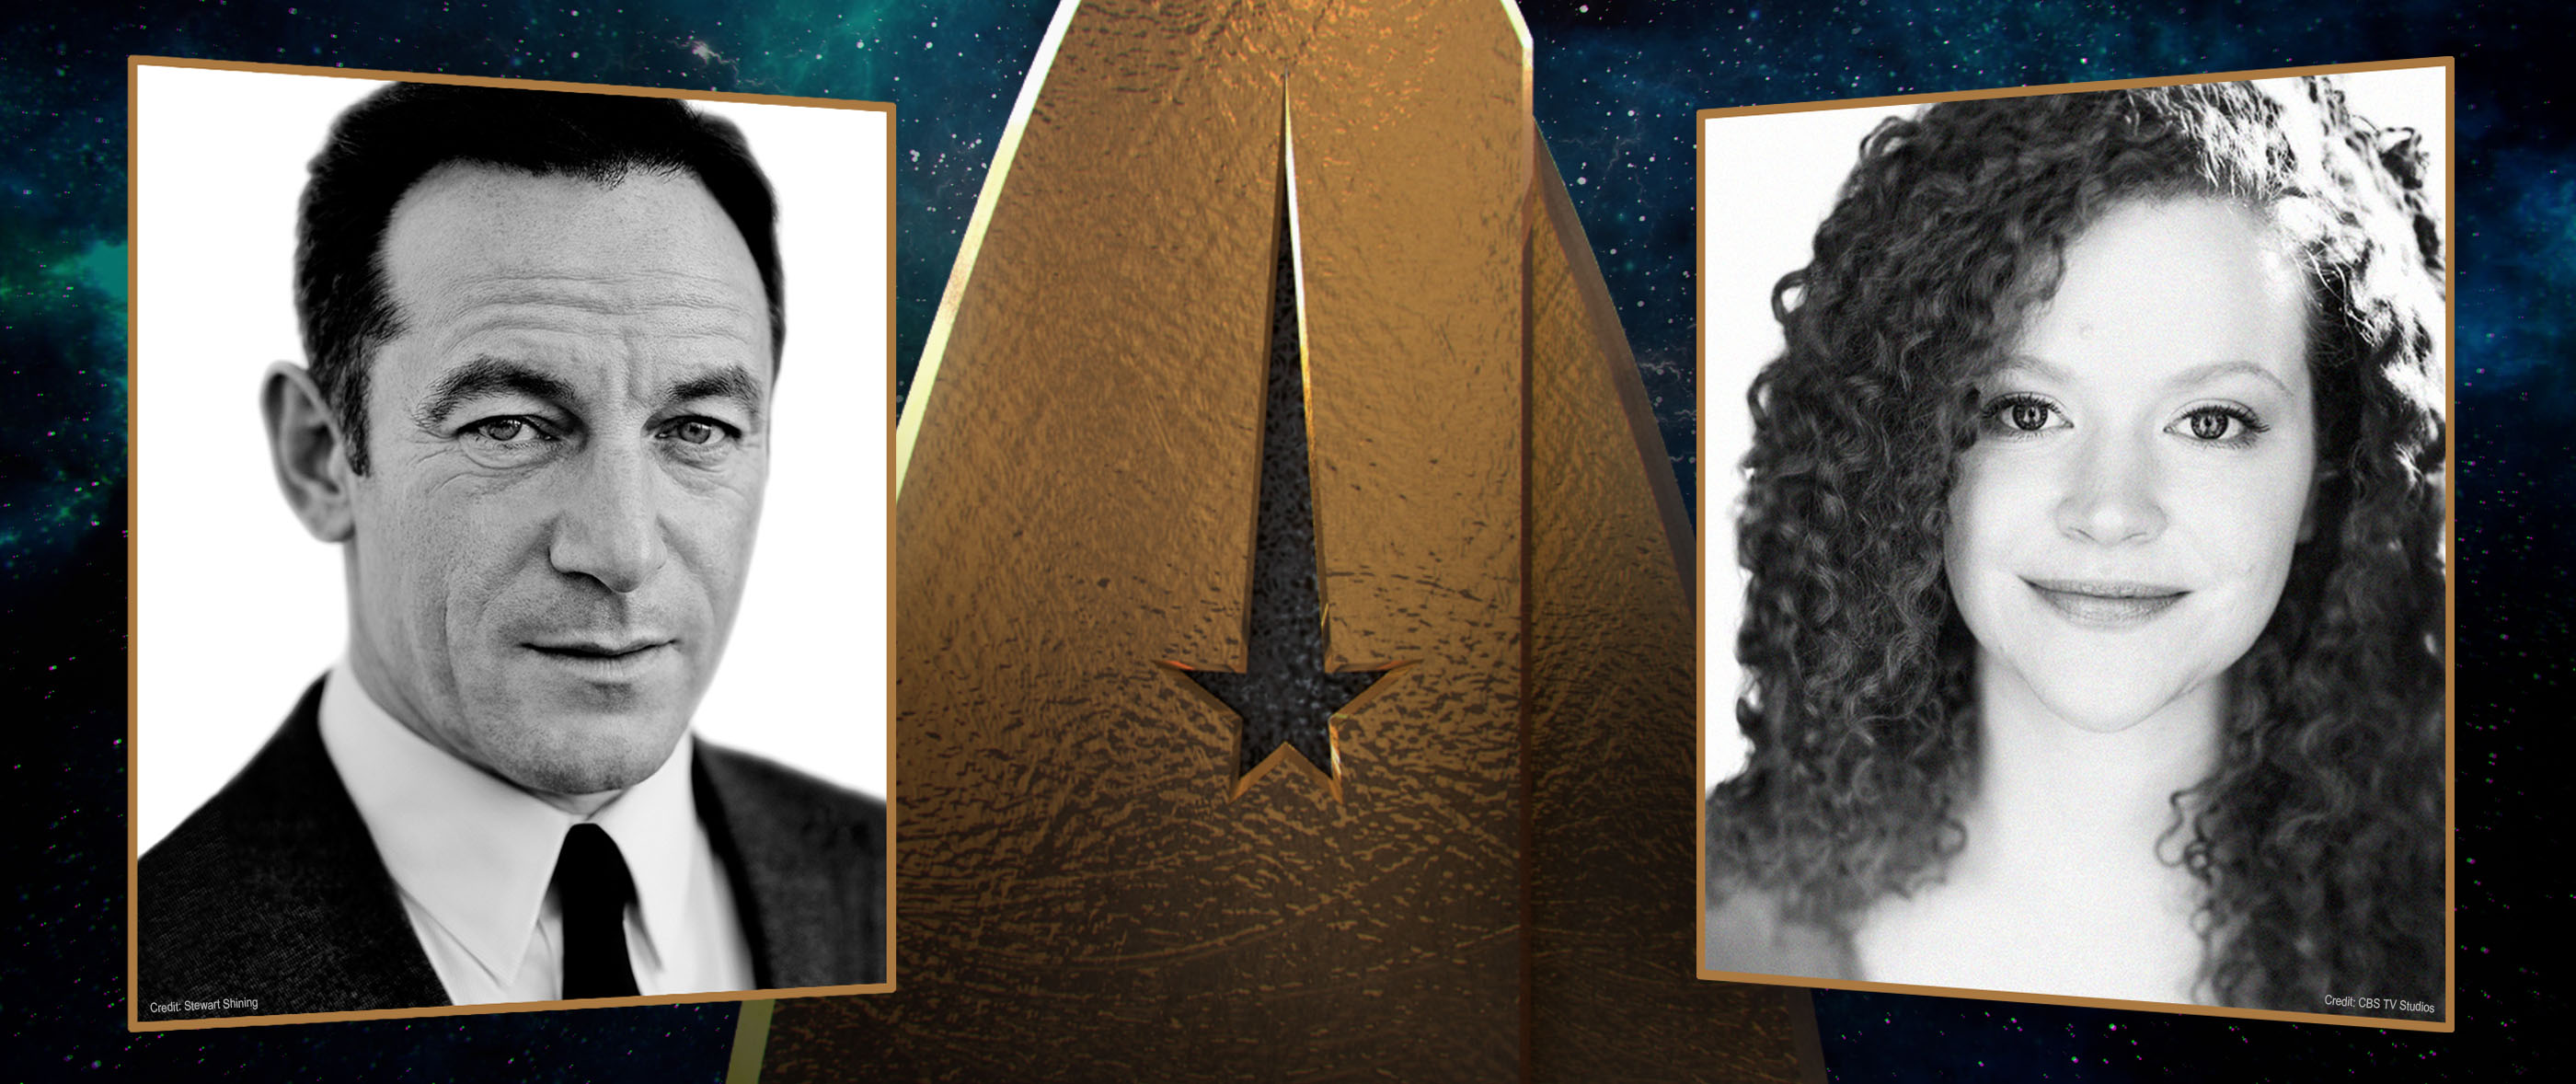 Star Trek: Discovery Adds Jason Isaacs to its Ranks as Captain